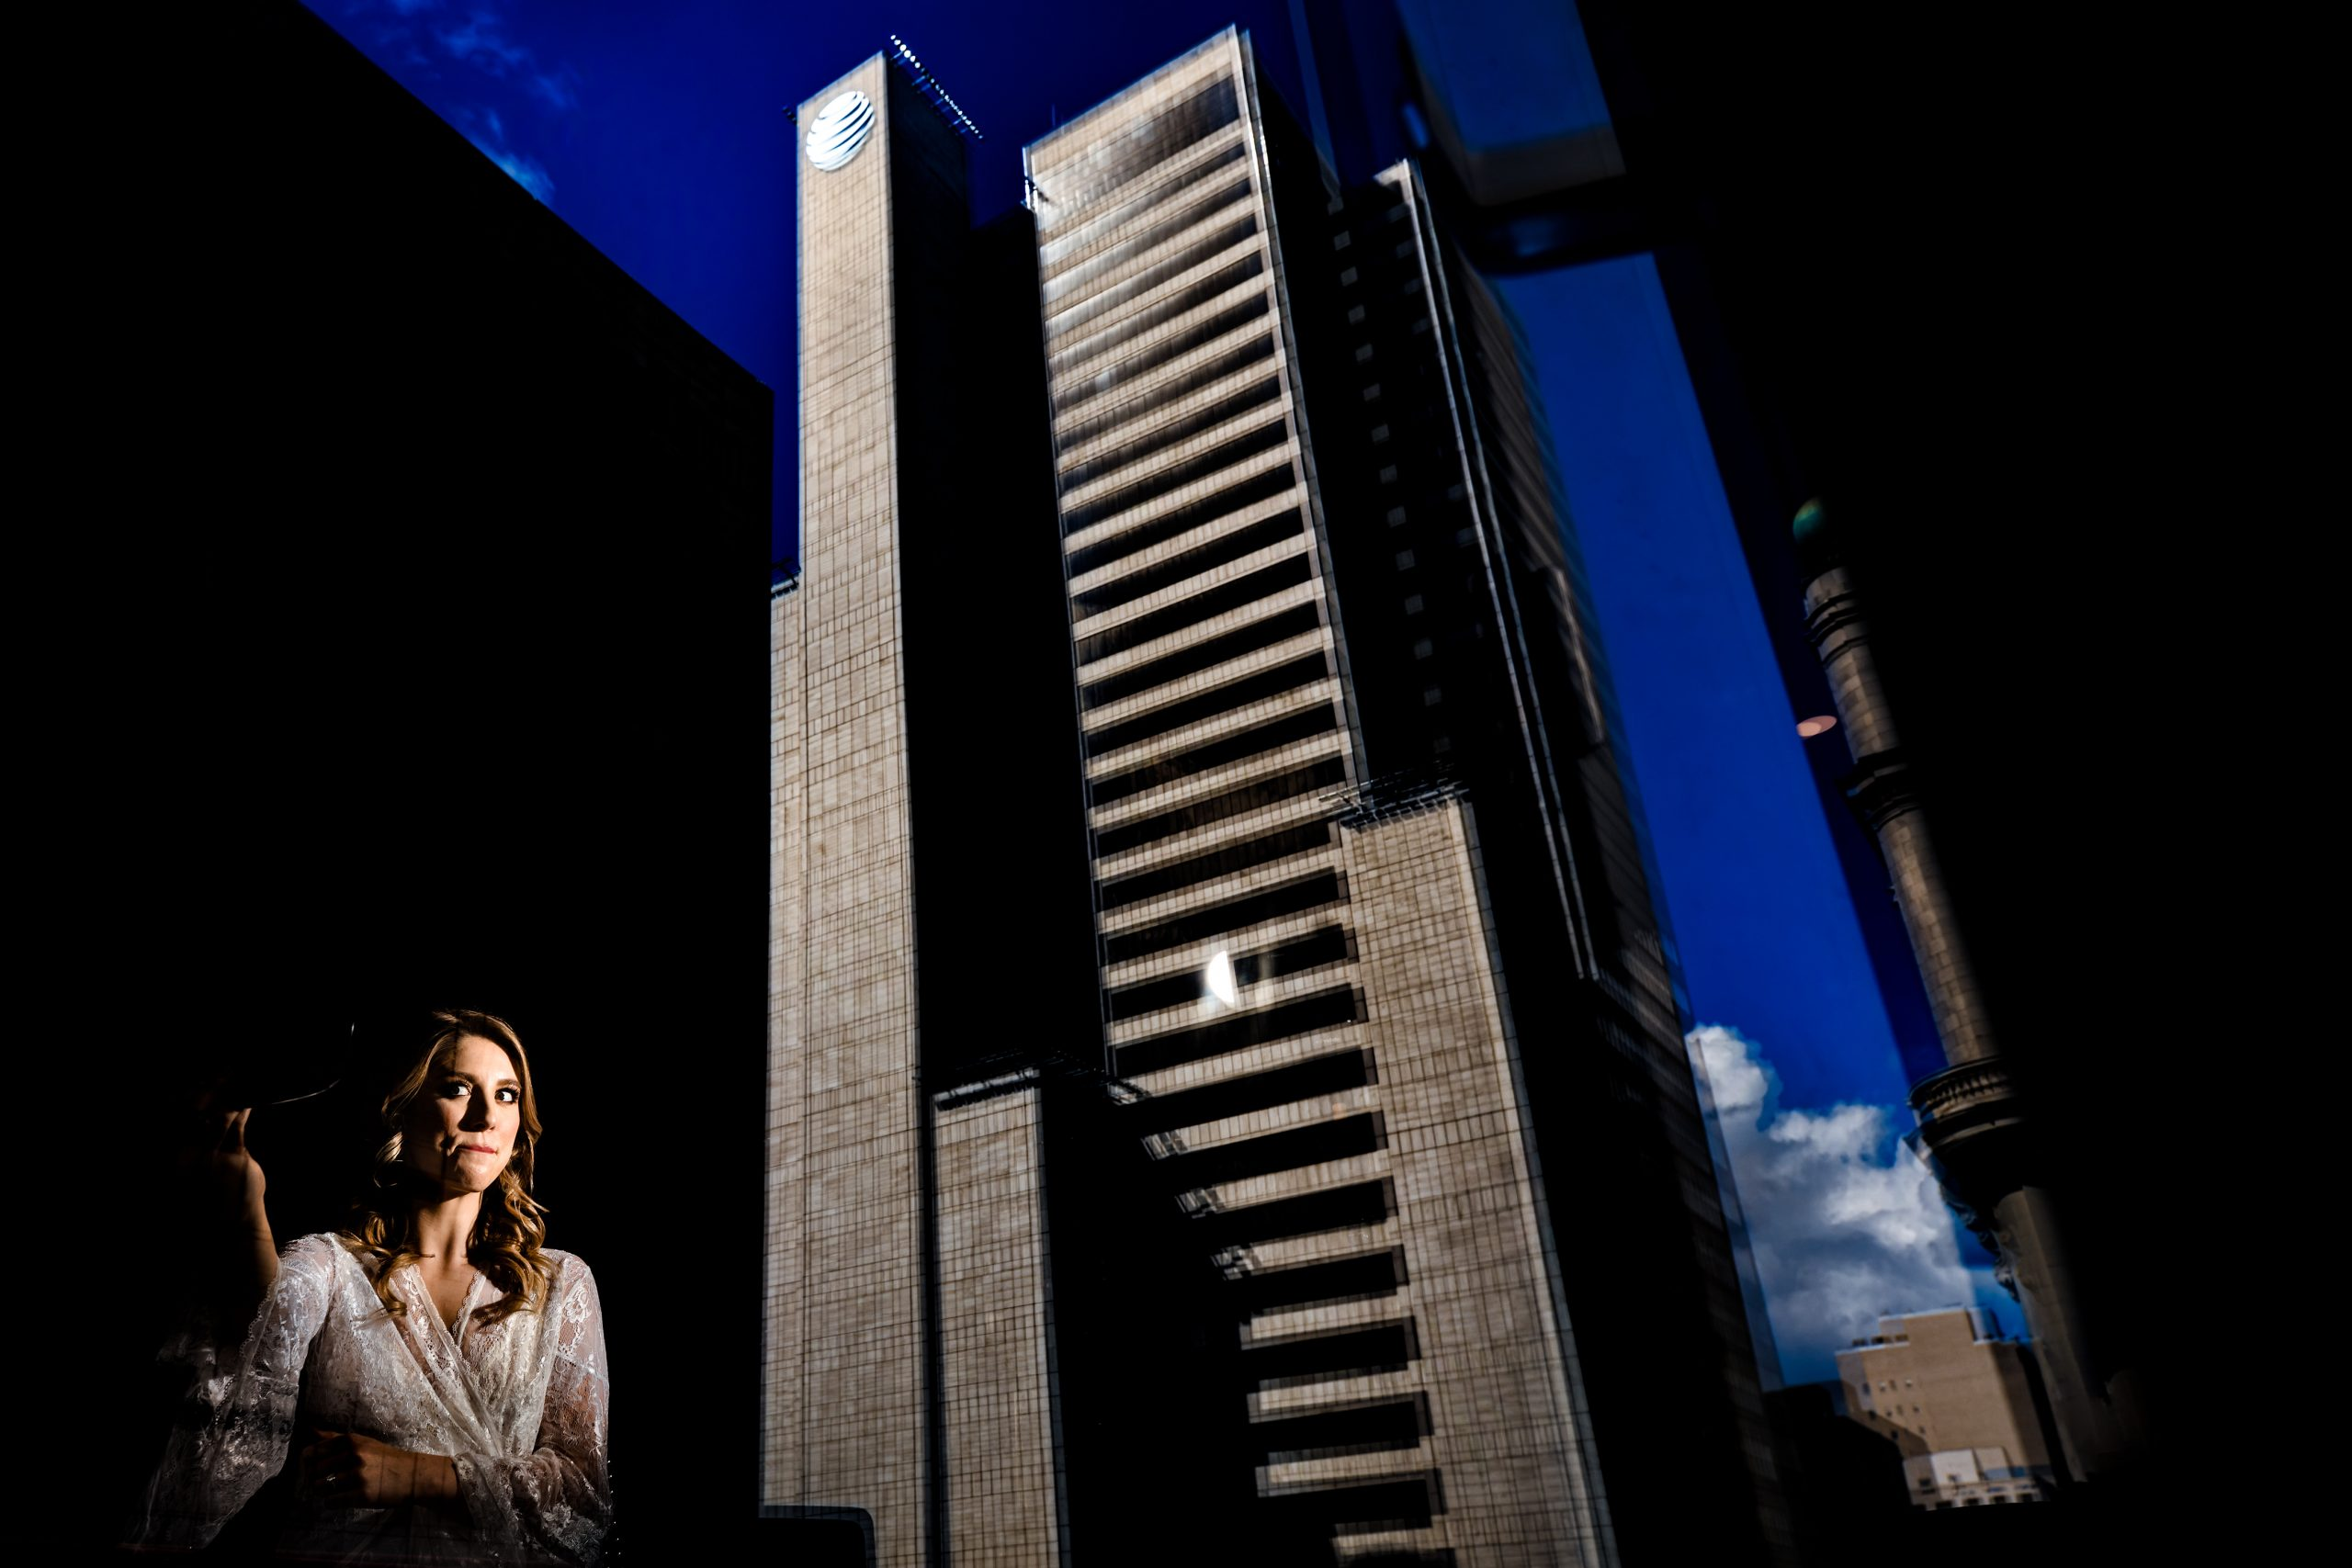 Bride prepares for her wedding with the reflection of a high-rise building.